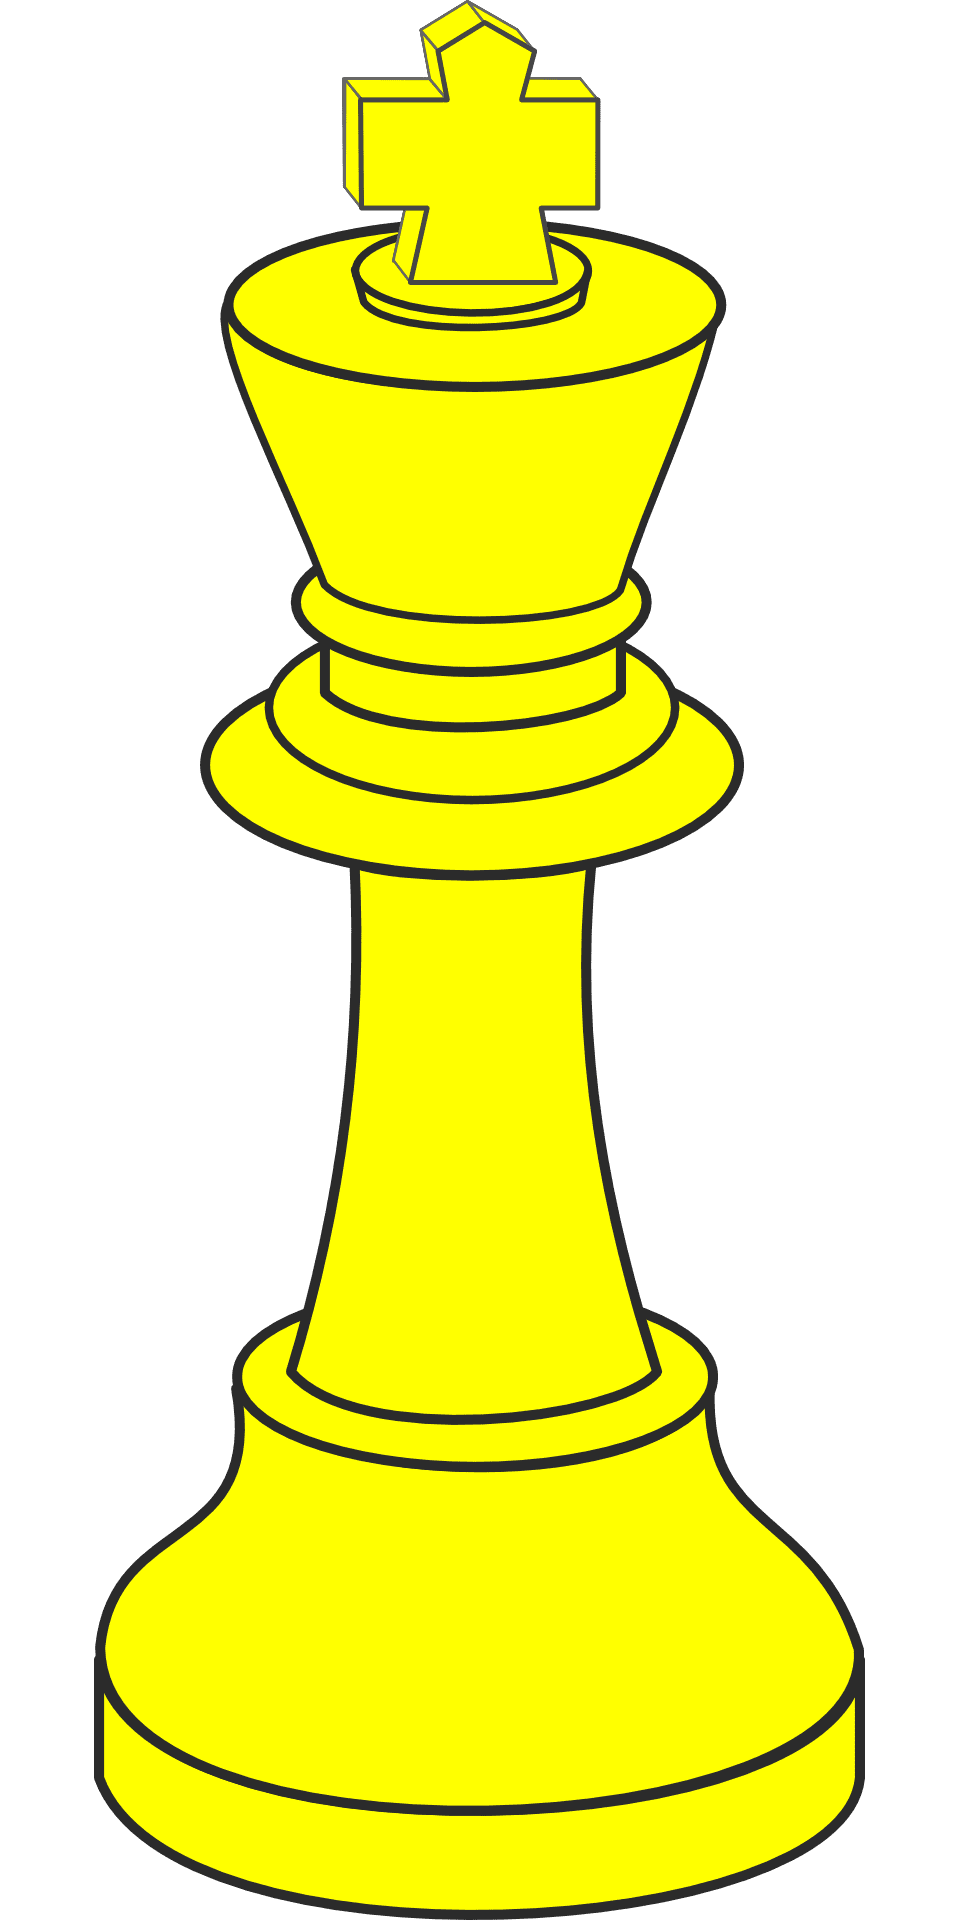 King Chess Piece for Marketing Victory